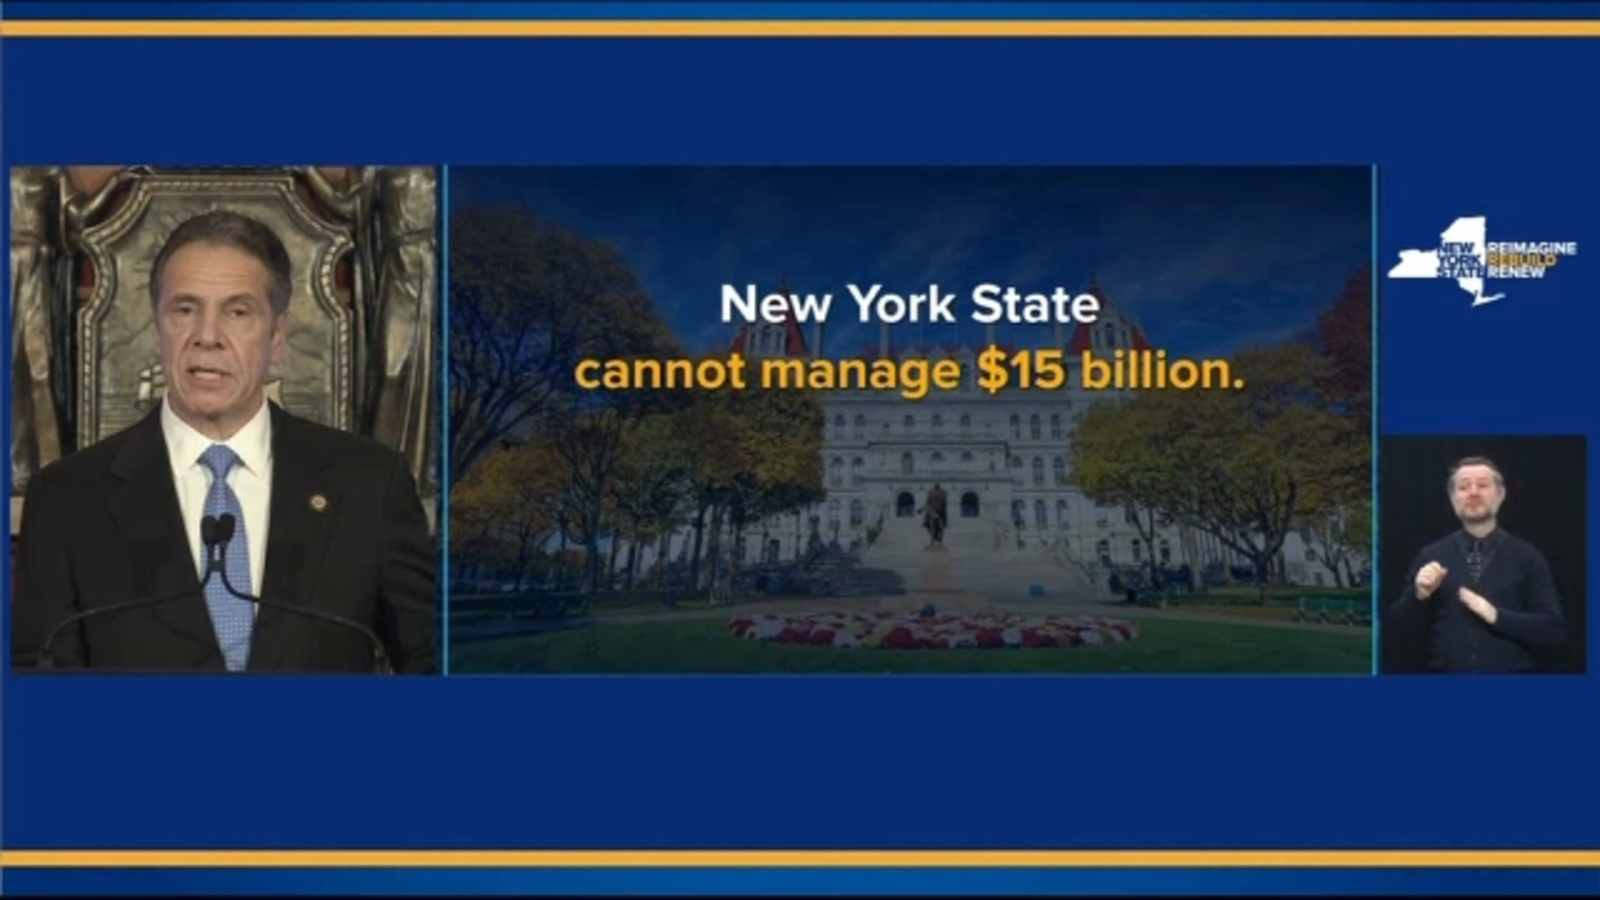 NY Gov. Andrew Cuomo presents Fiscal Year 2022 Executive Budget